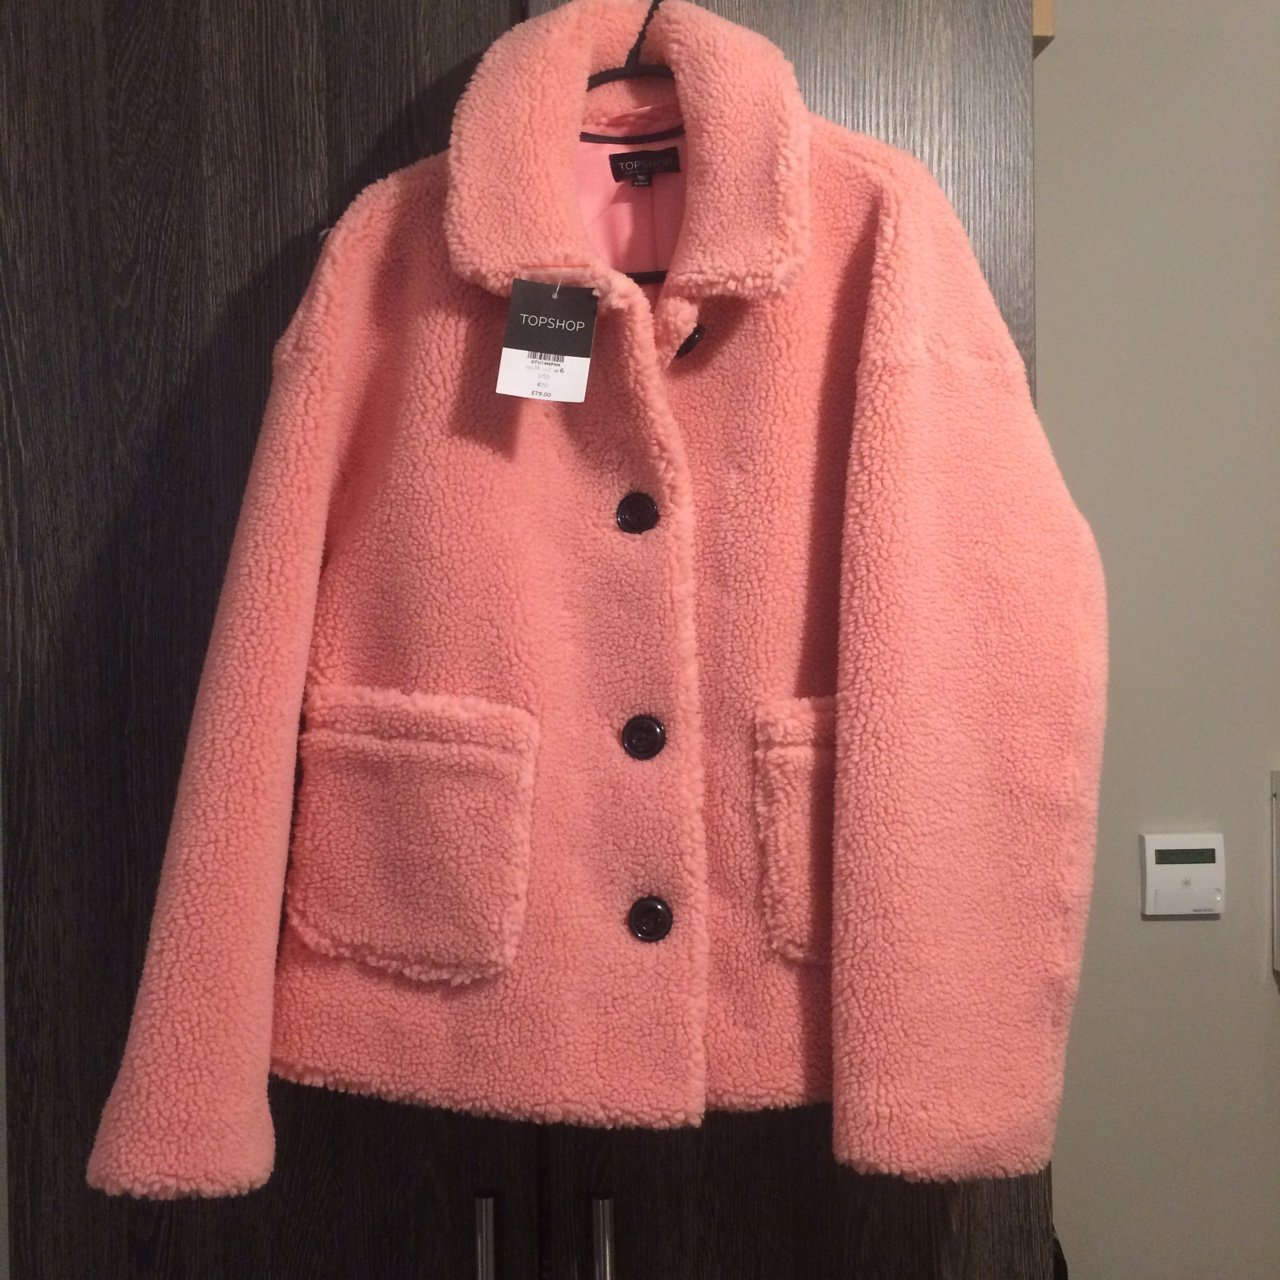 4be1b429d0048 Topshop pink borg coat Brand new unworn with tags RRP 6 but - Depop